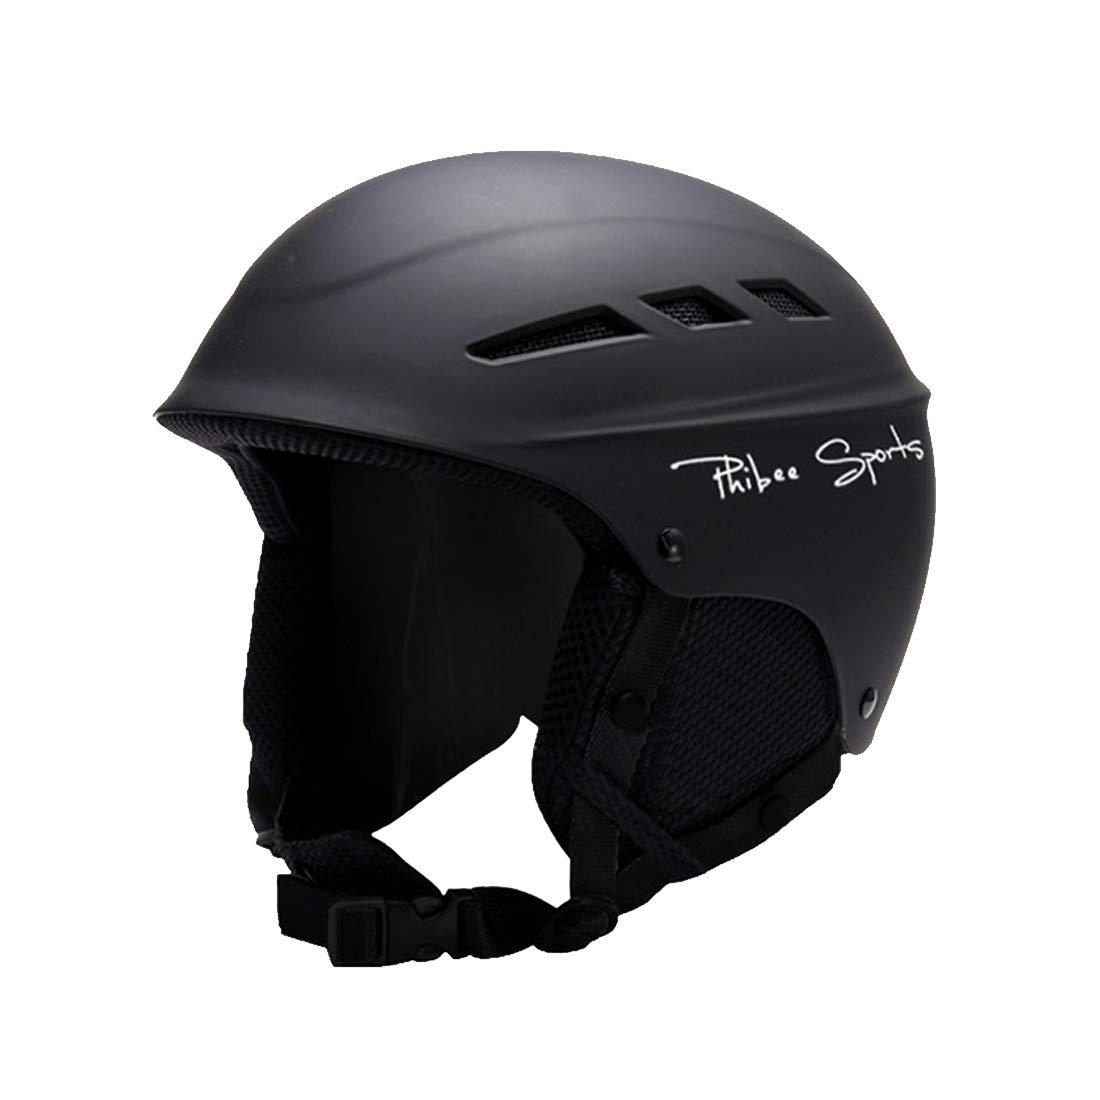 VAXT Fit for 56-60cm, Sizing: M, Undivided and Forked Plate Skiing Professional Protective Helmet 8 Air Vents PC Shell Adjustable Buckle Parent-Child Protective Helmet